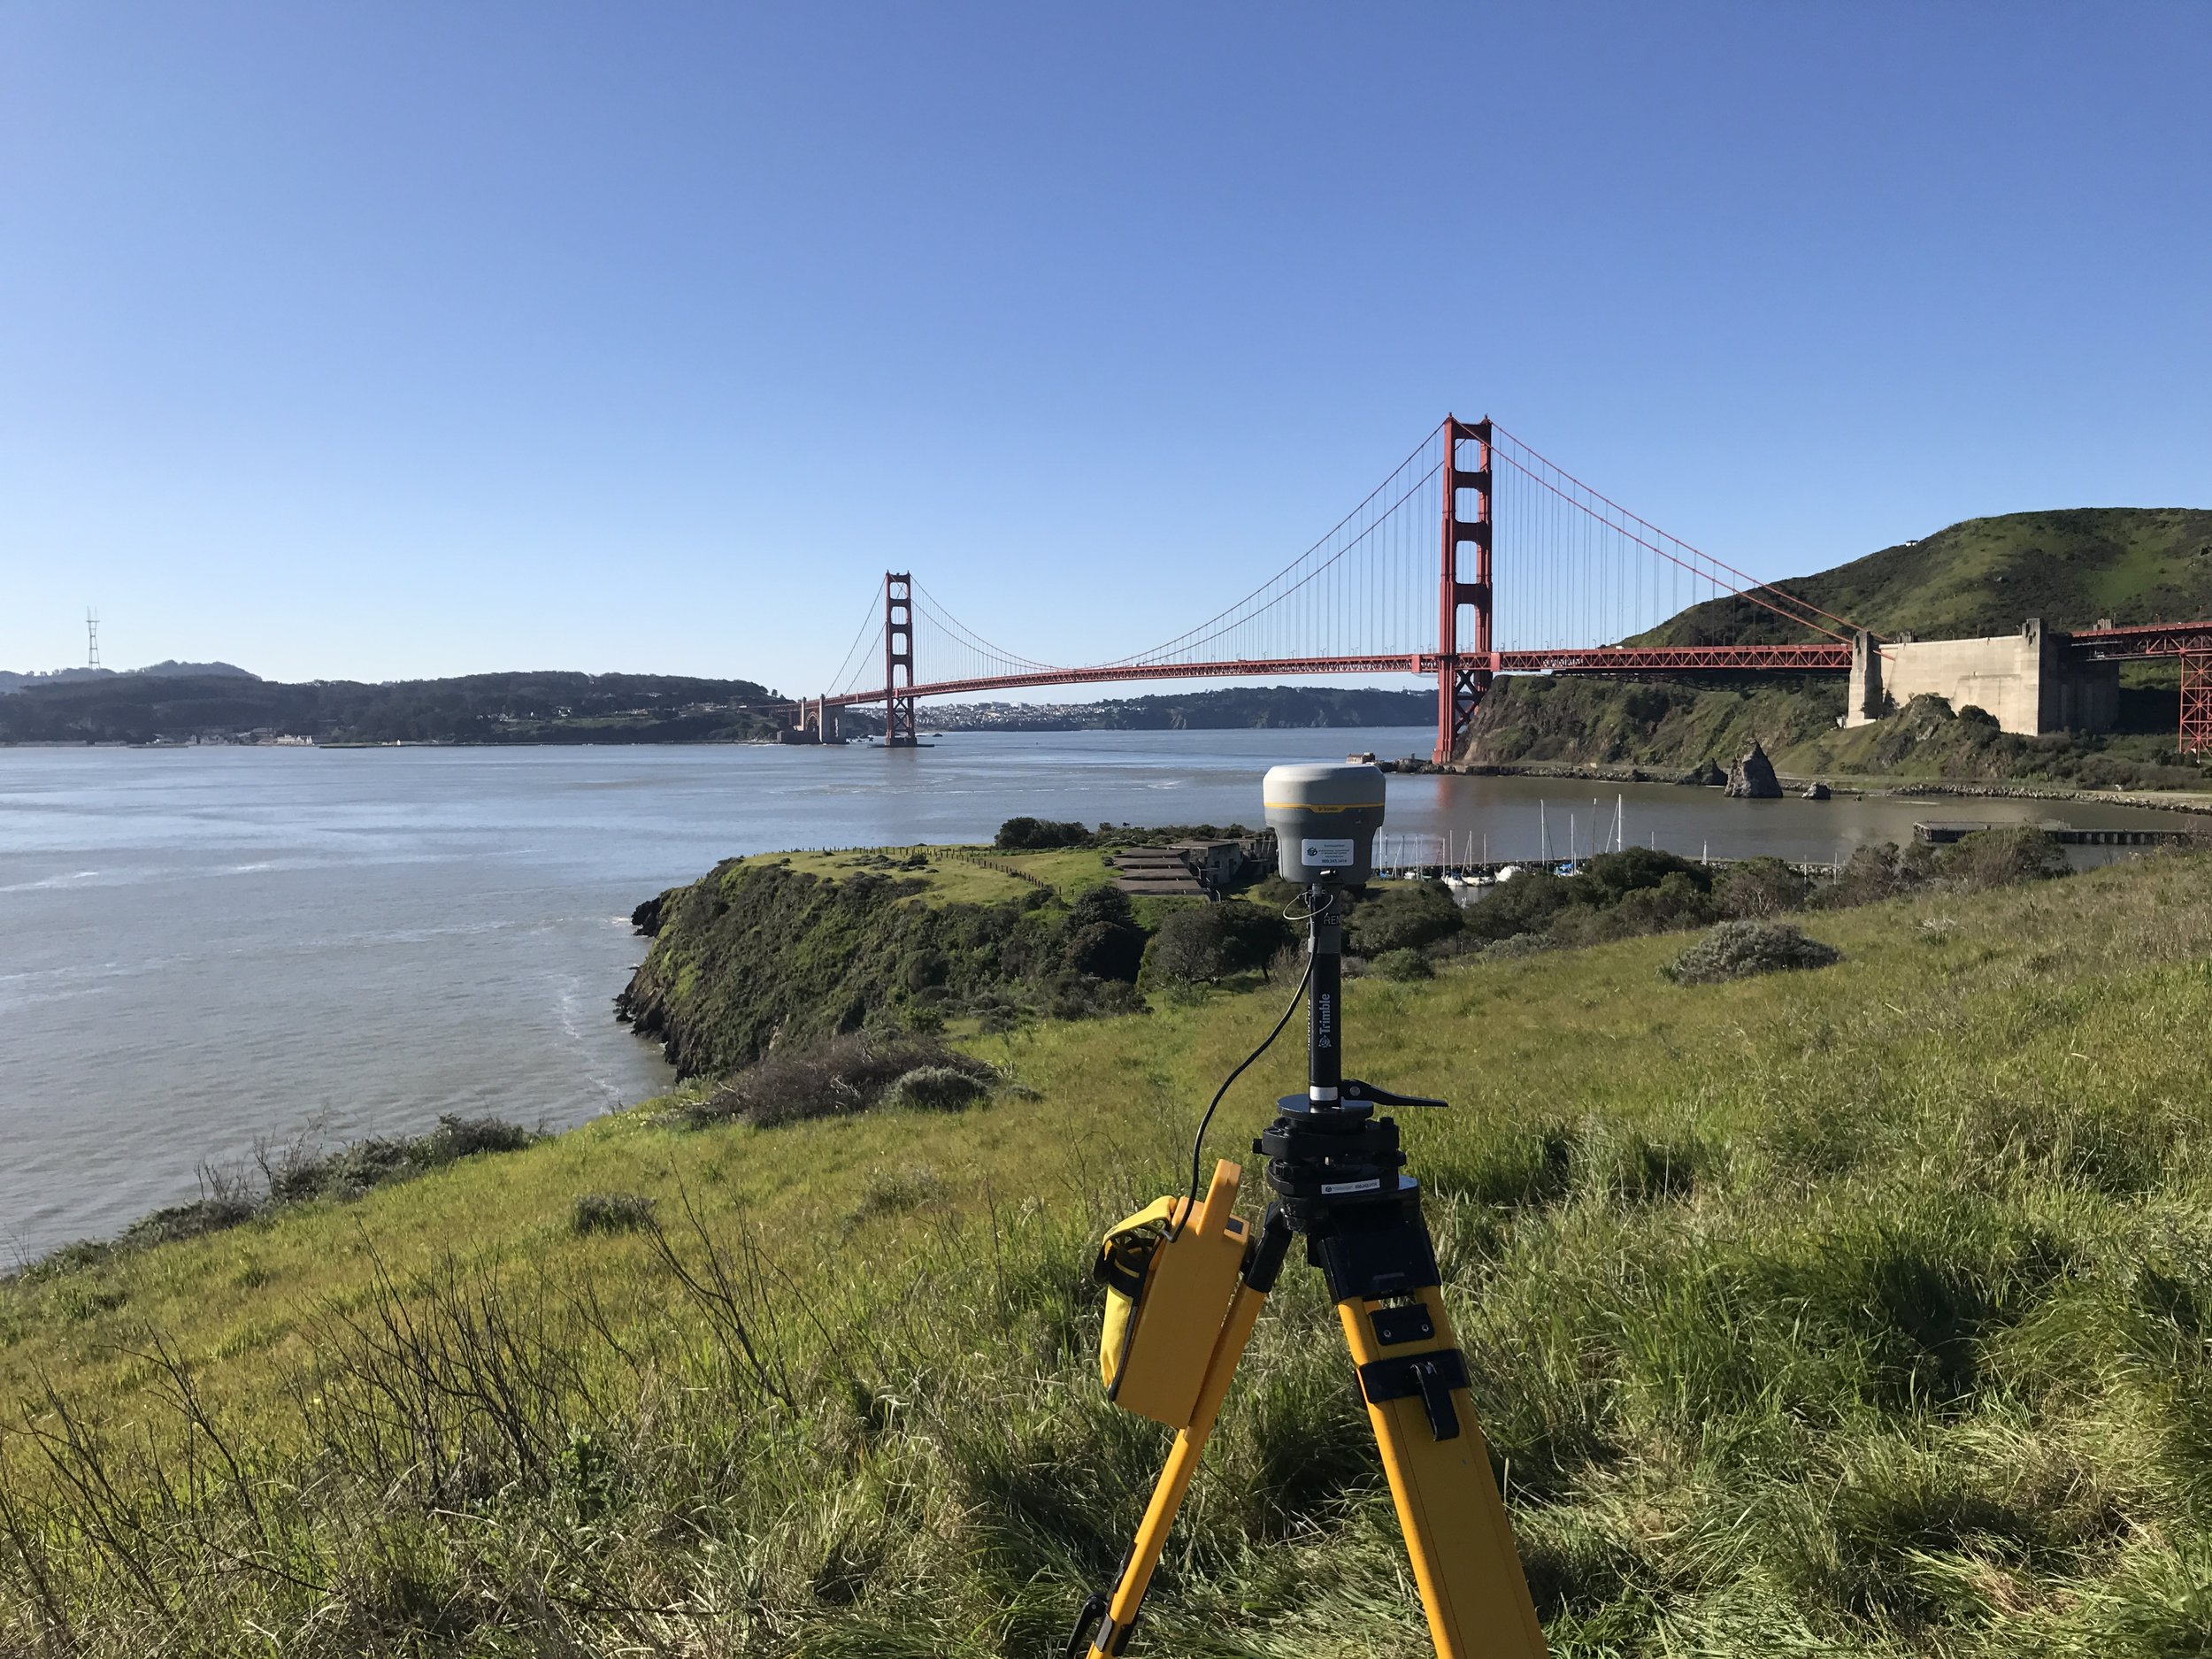 Real Time Kinematics (RTK) receiver at Cavallo Point in Sausalito, Ca